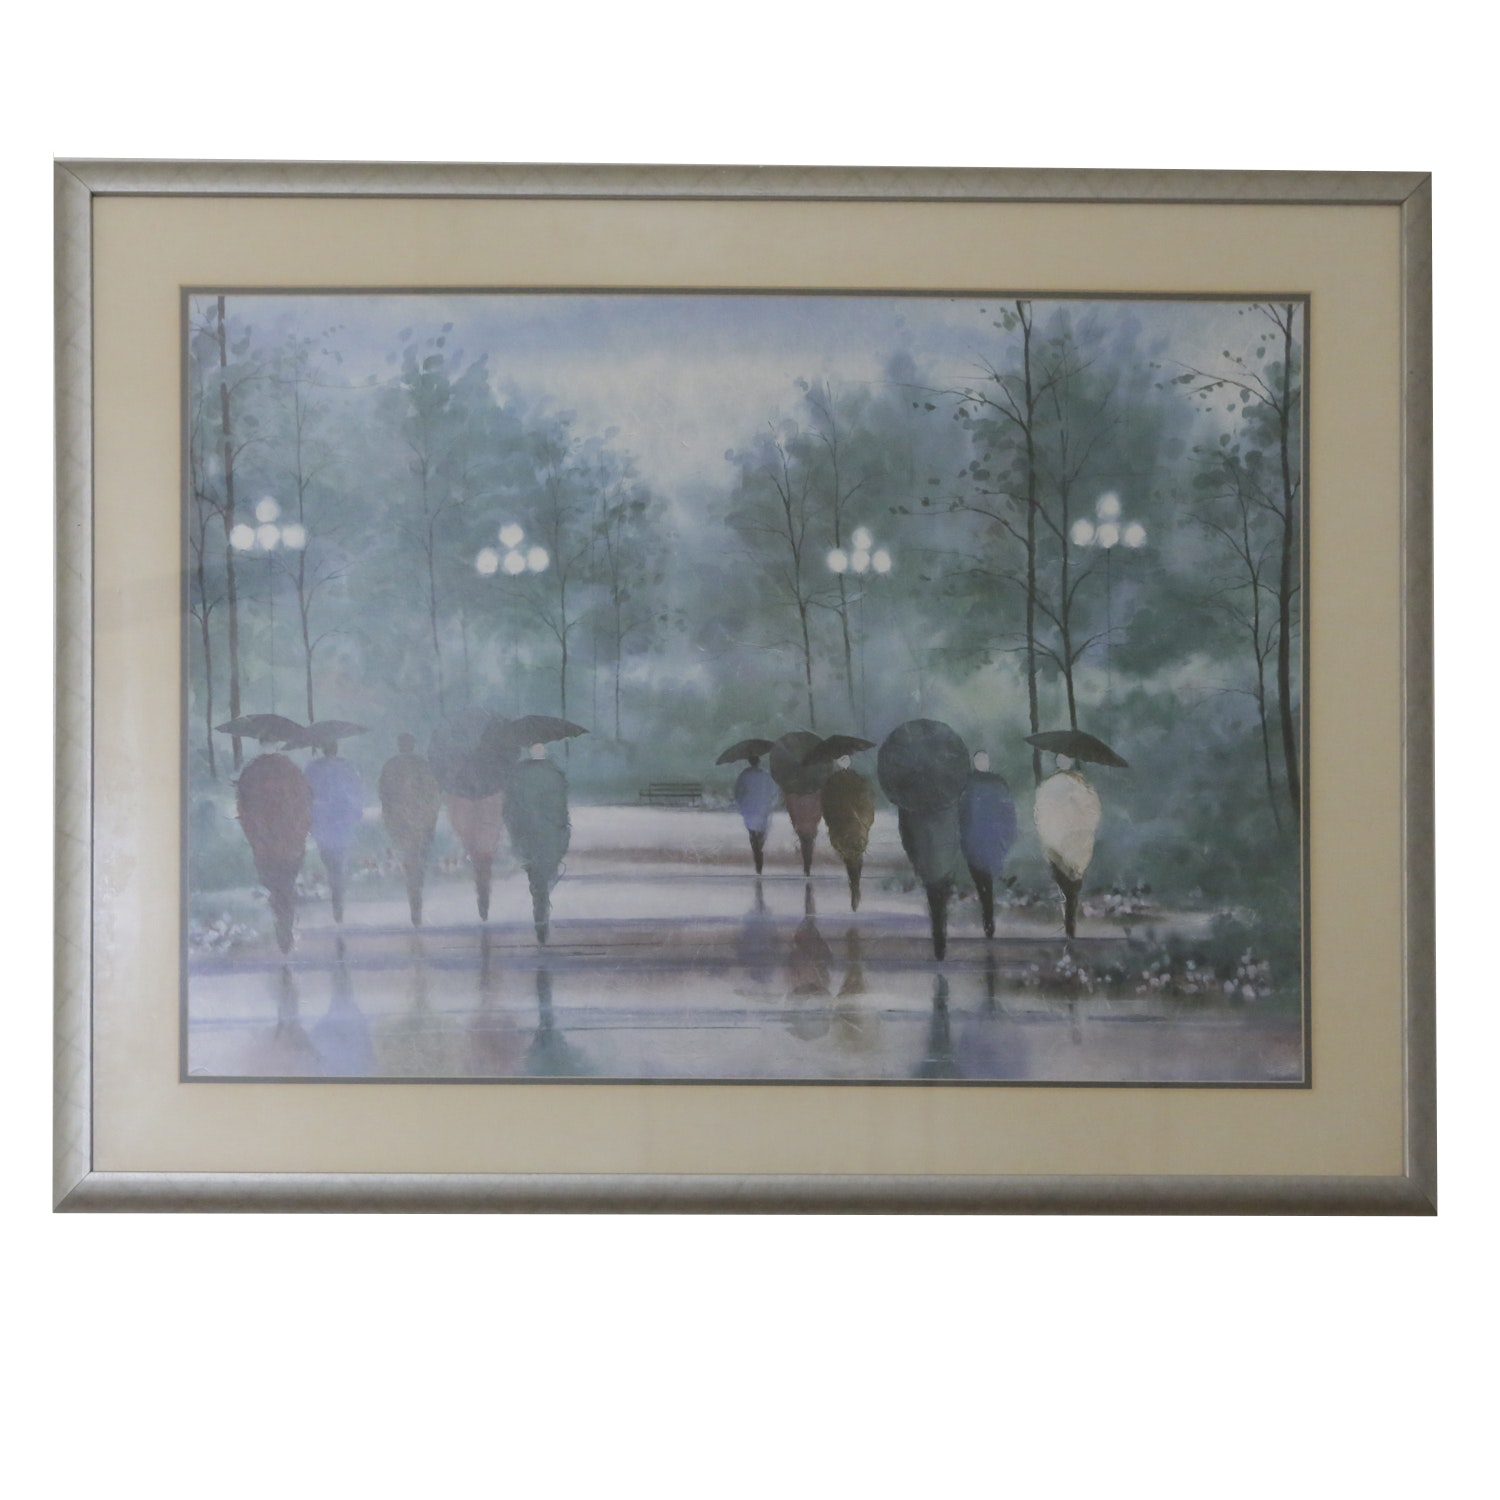 Reproduction Print of Figures in a Park on a Rainy Day